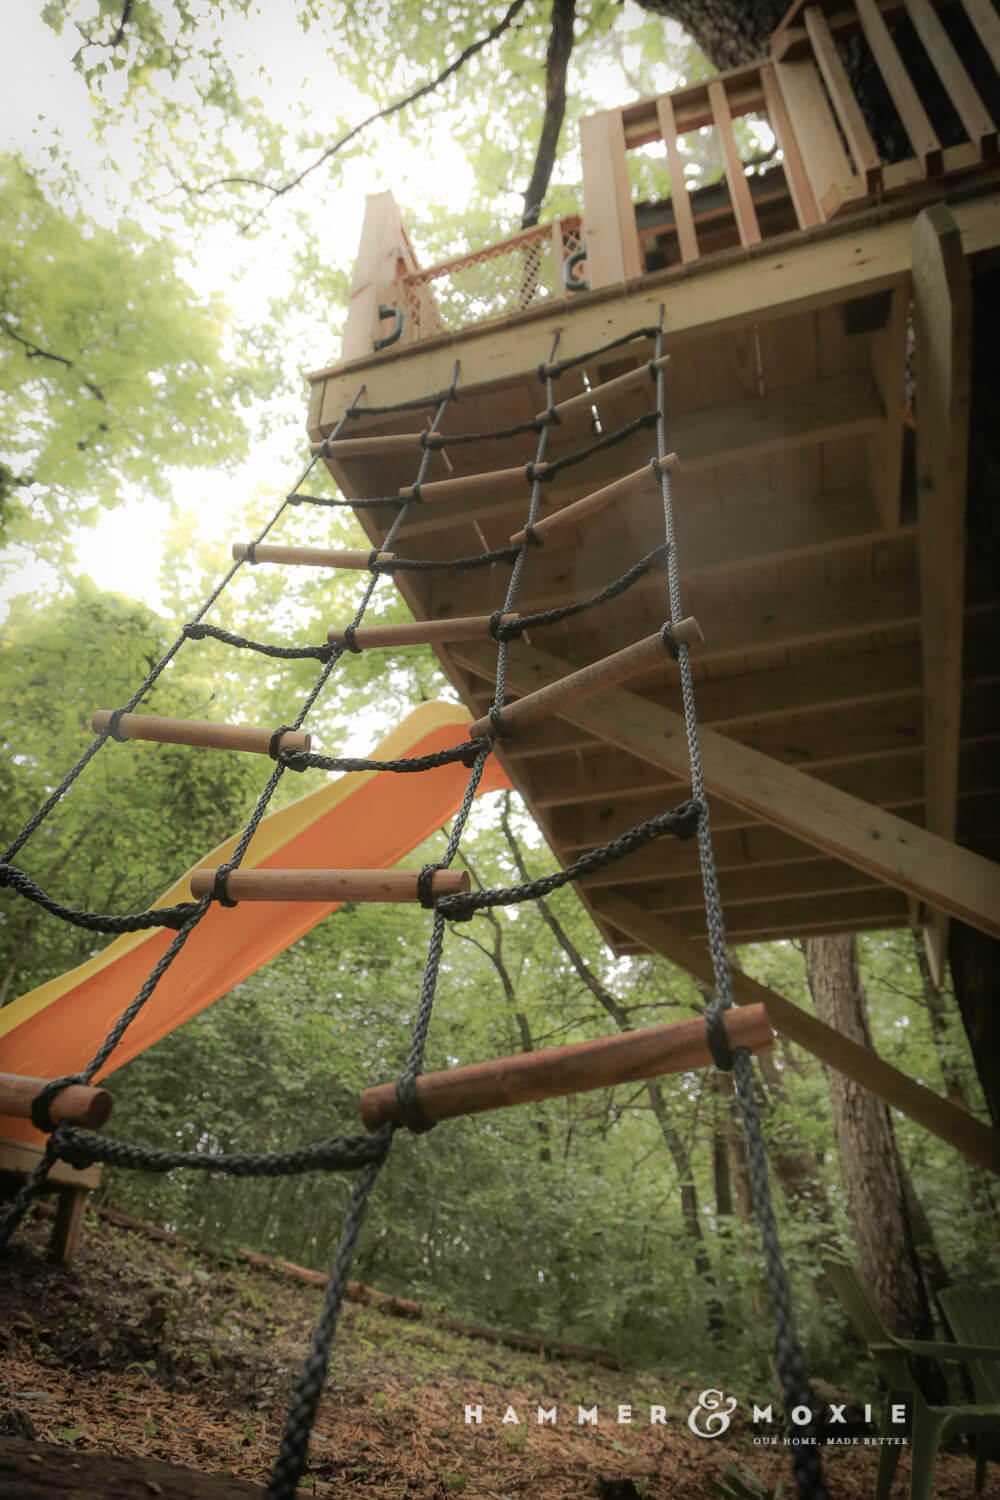 Treehouse Bucket & Pulley | Hammer & Moxie